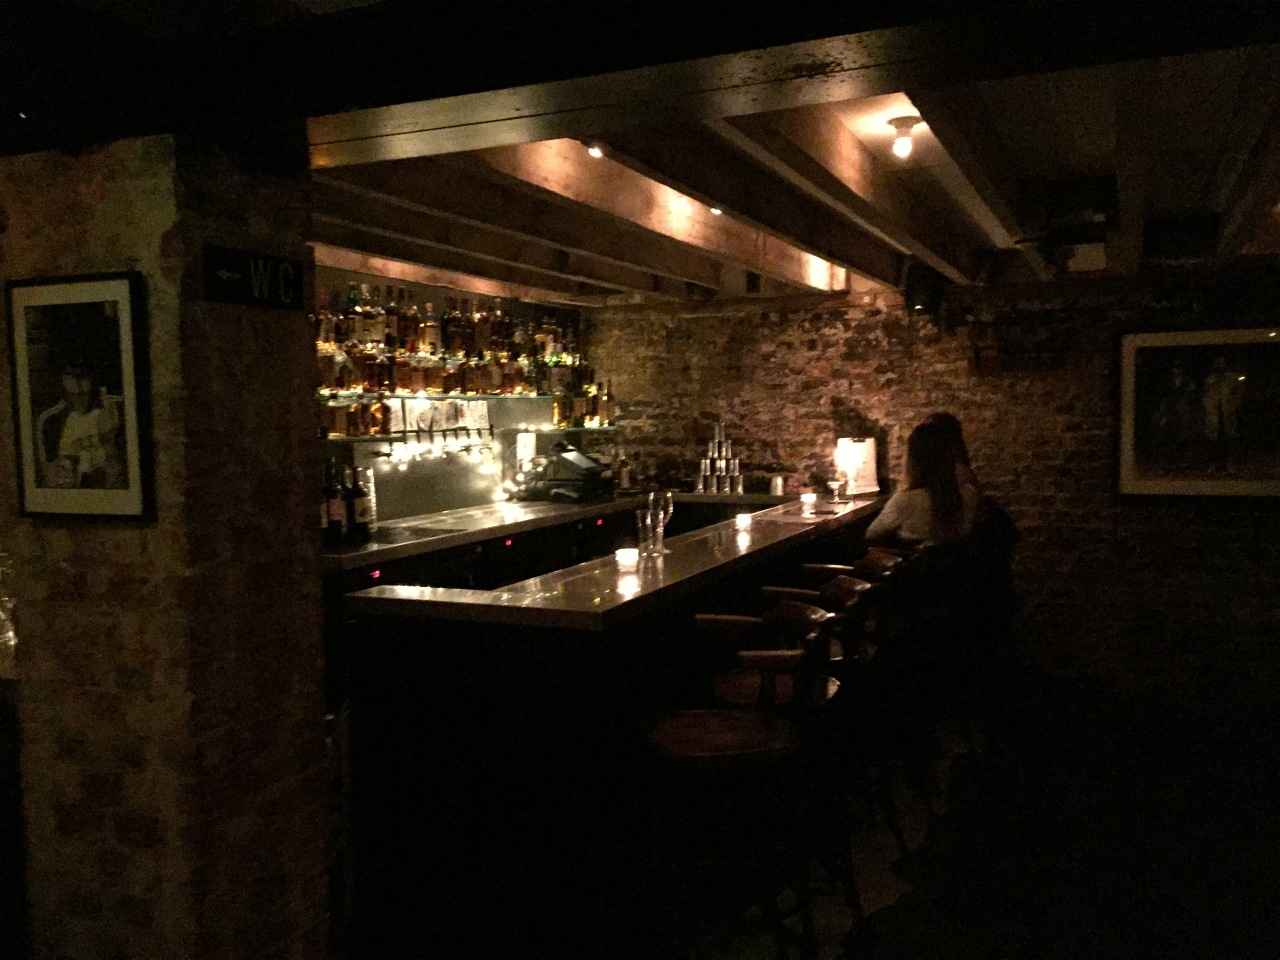 A candlelit bar in the basement of The Gallery